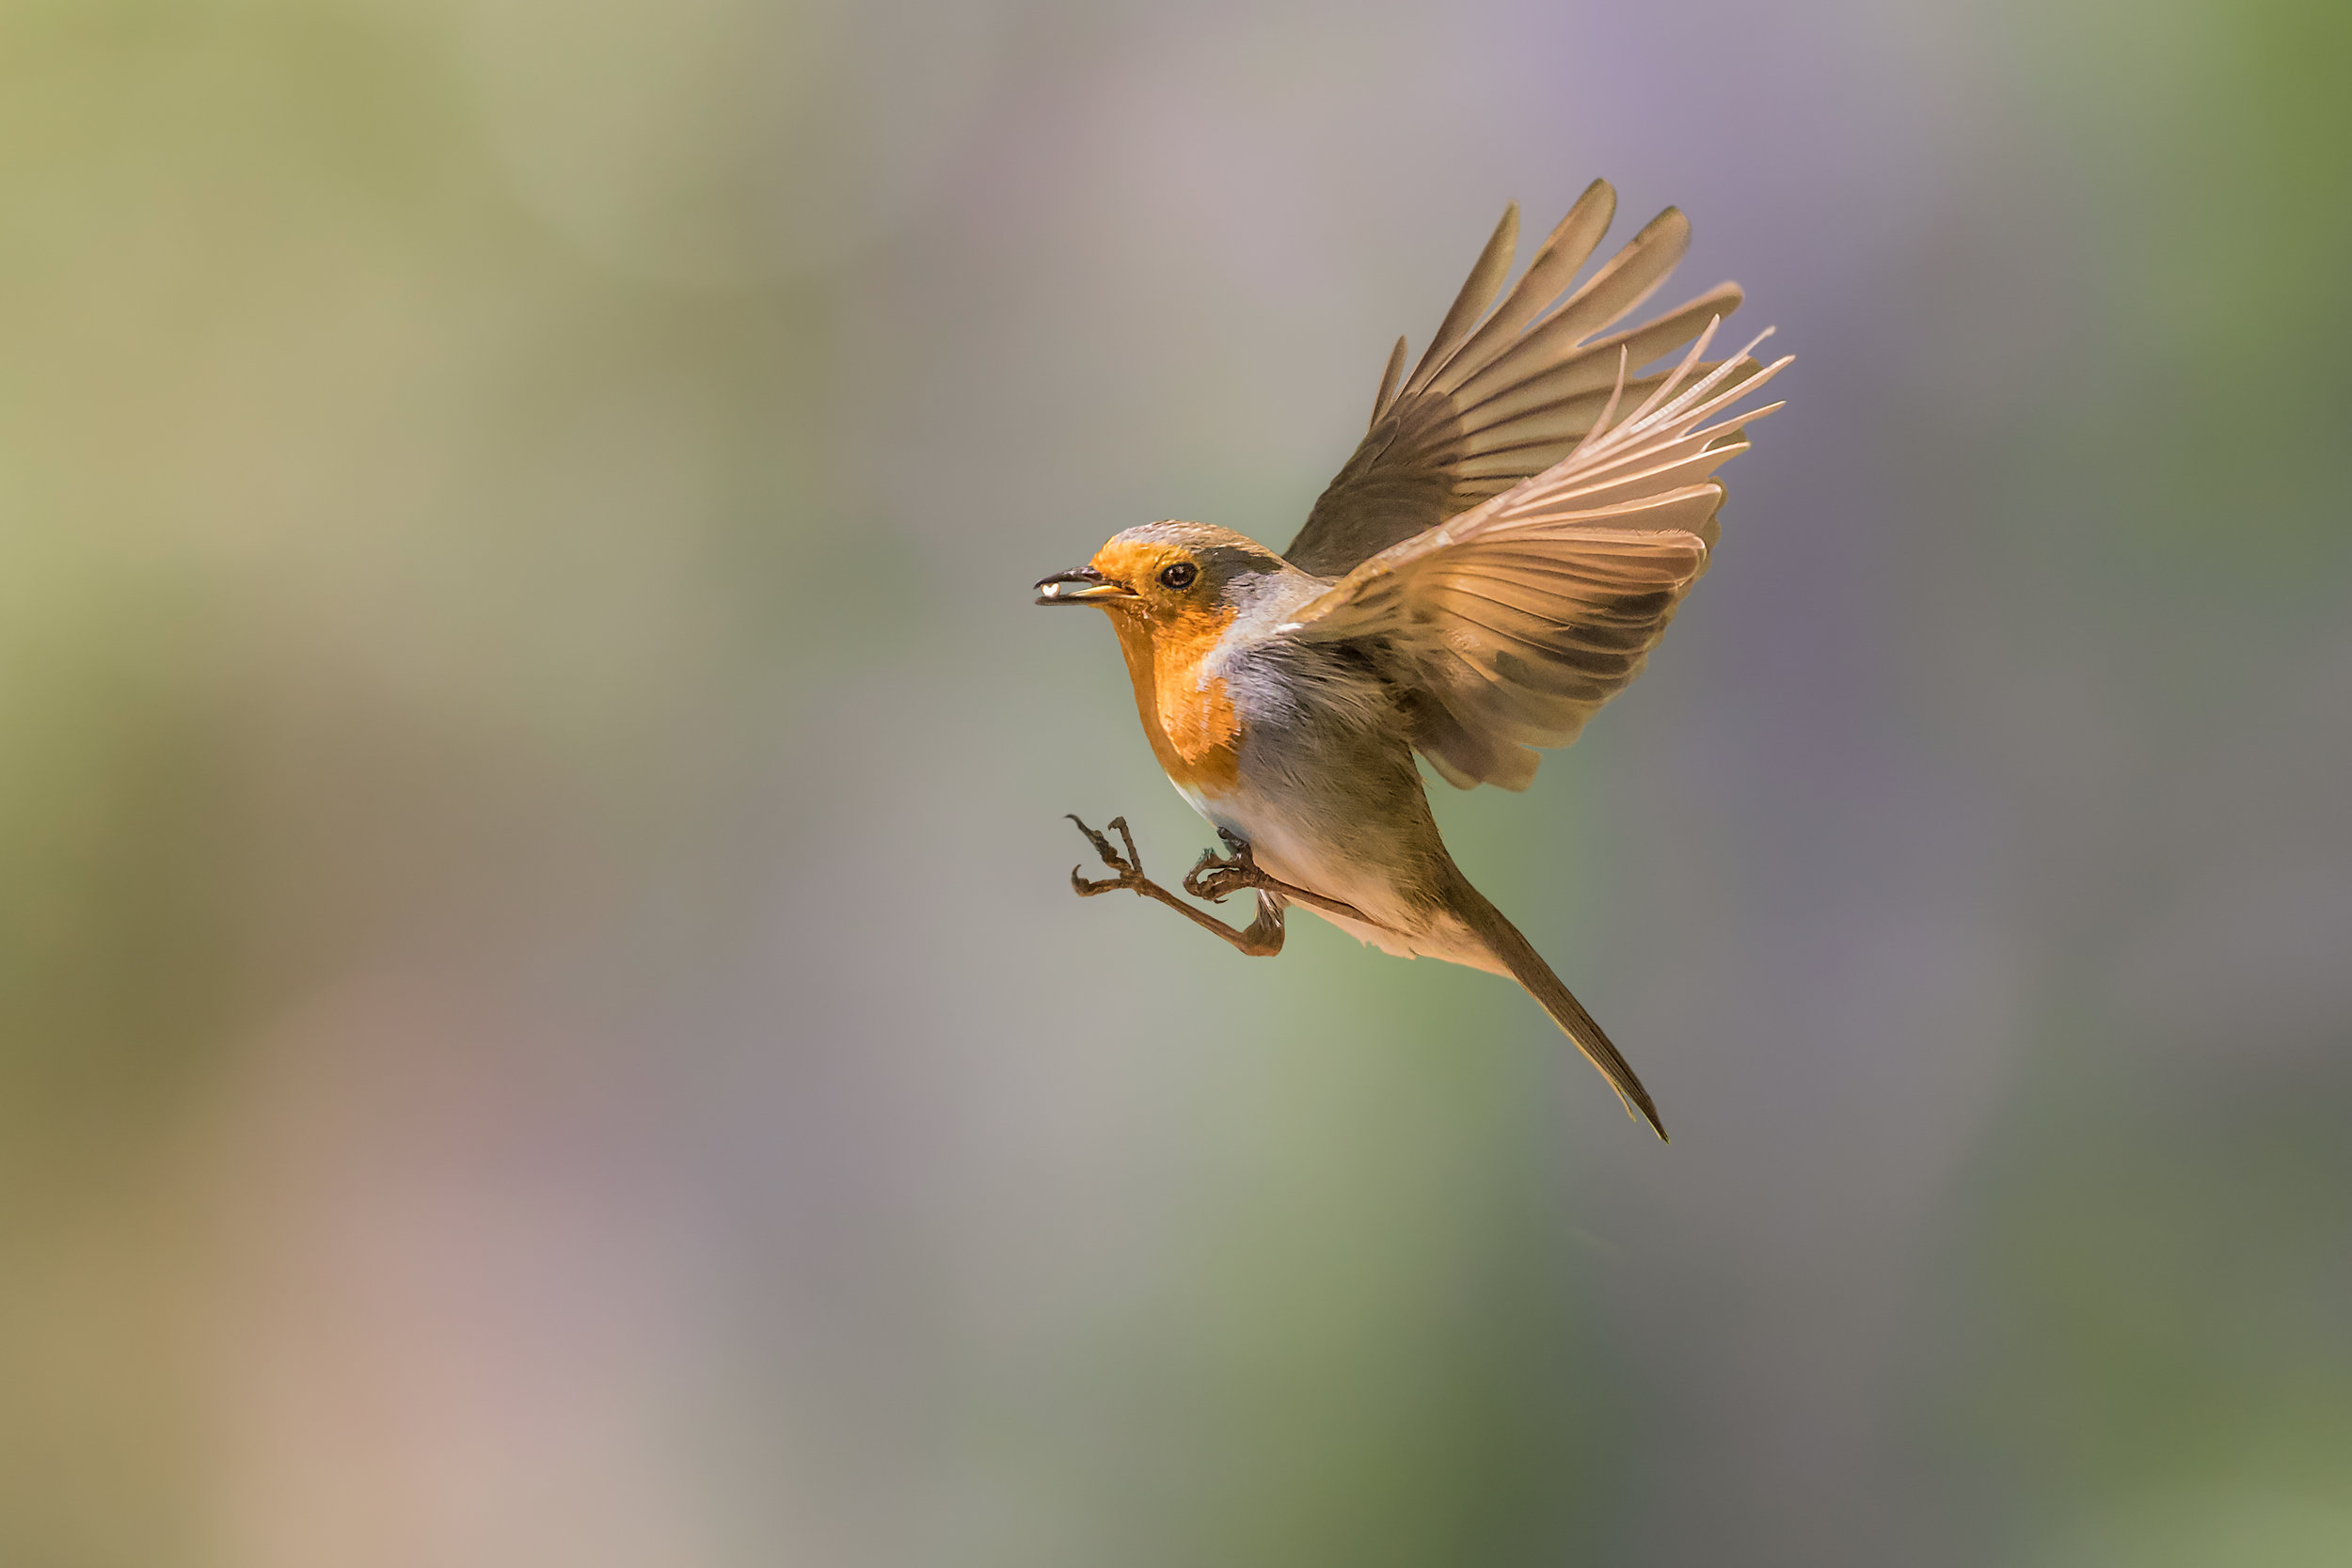 Robin fly past!